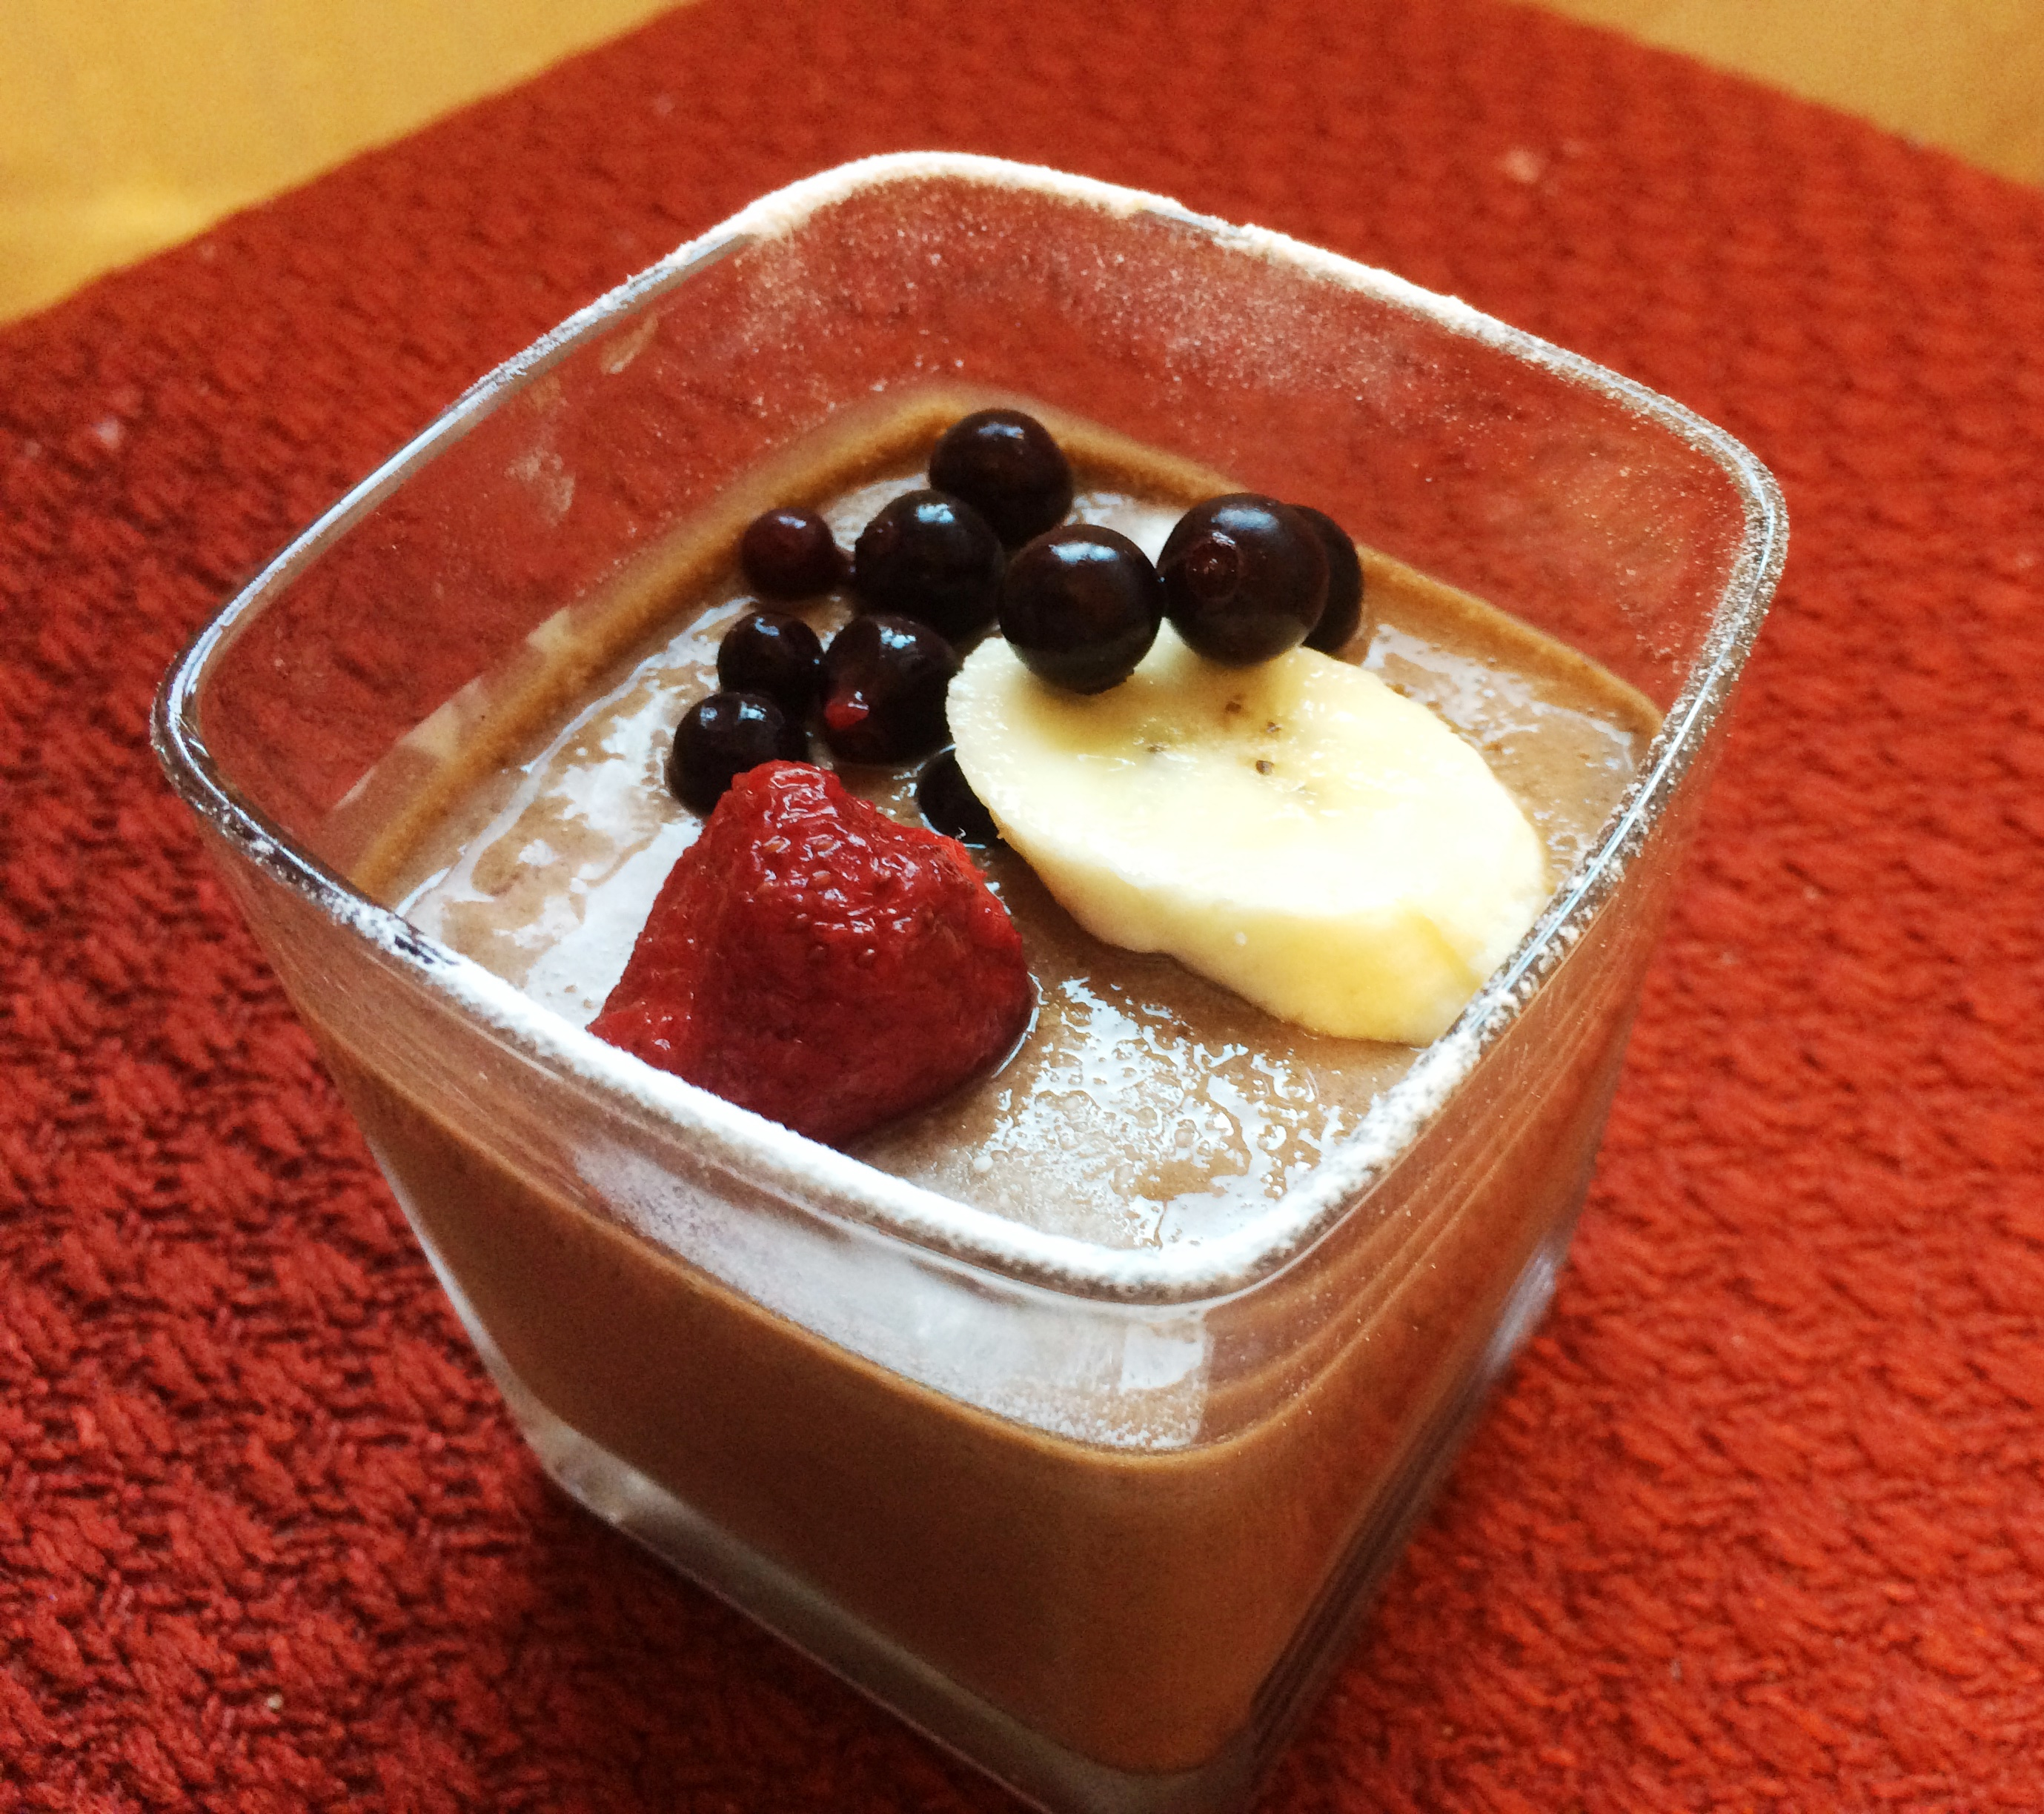 Creamiest Chocolate Mousse